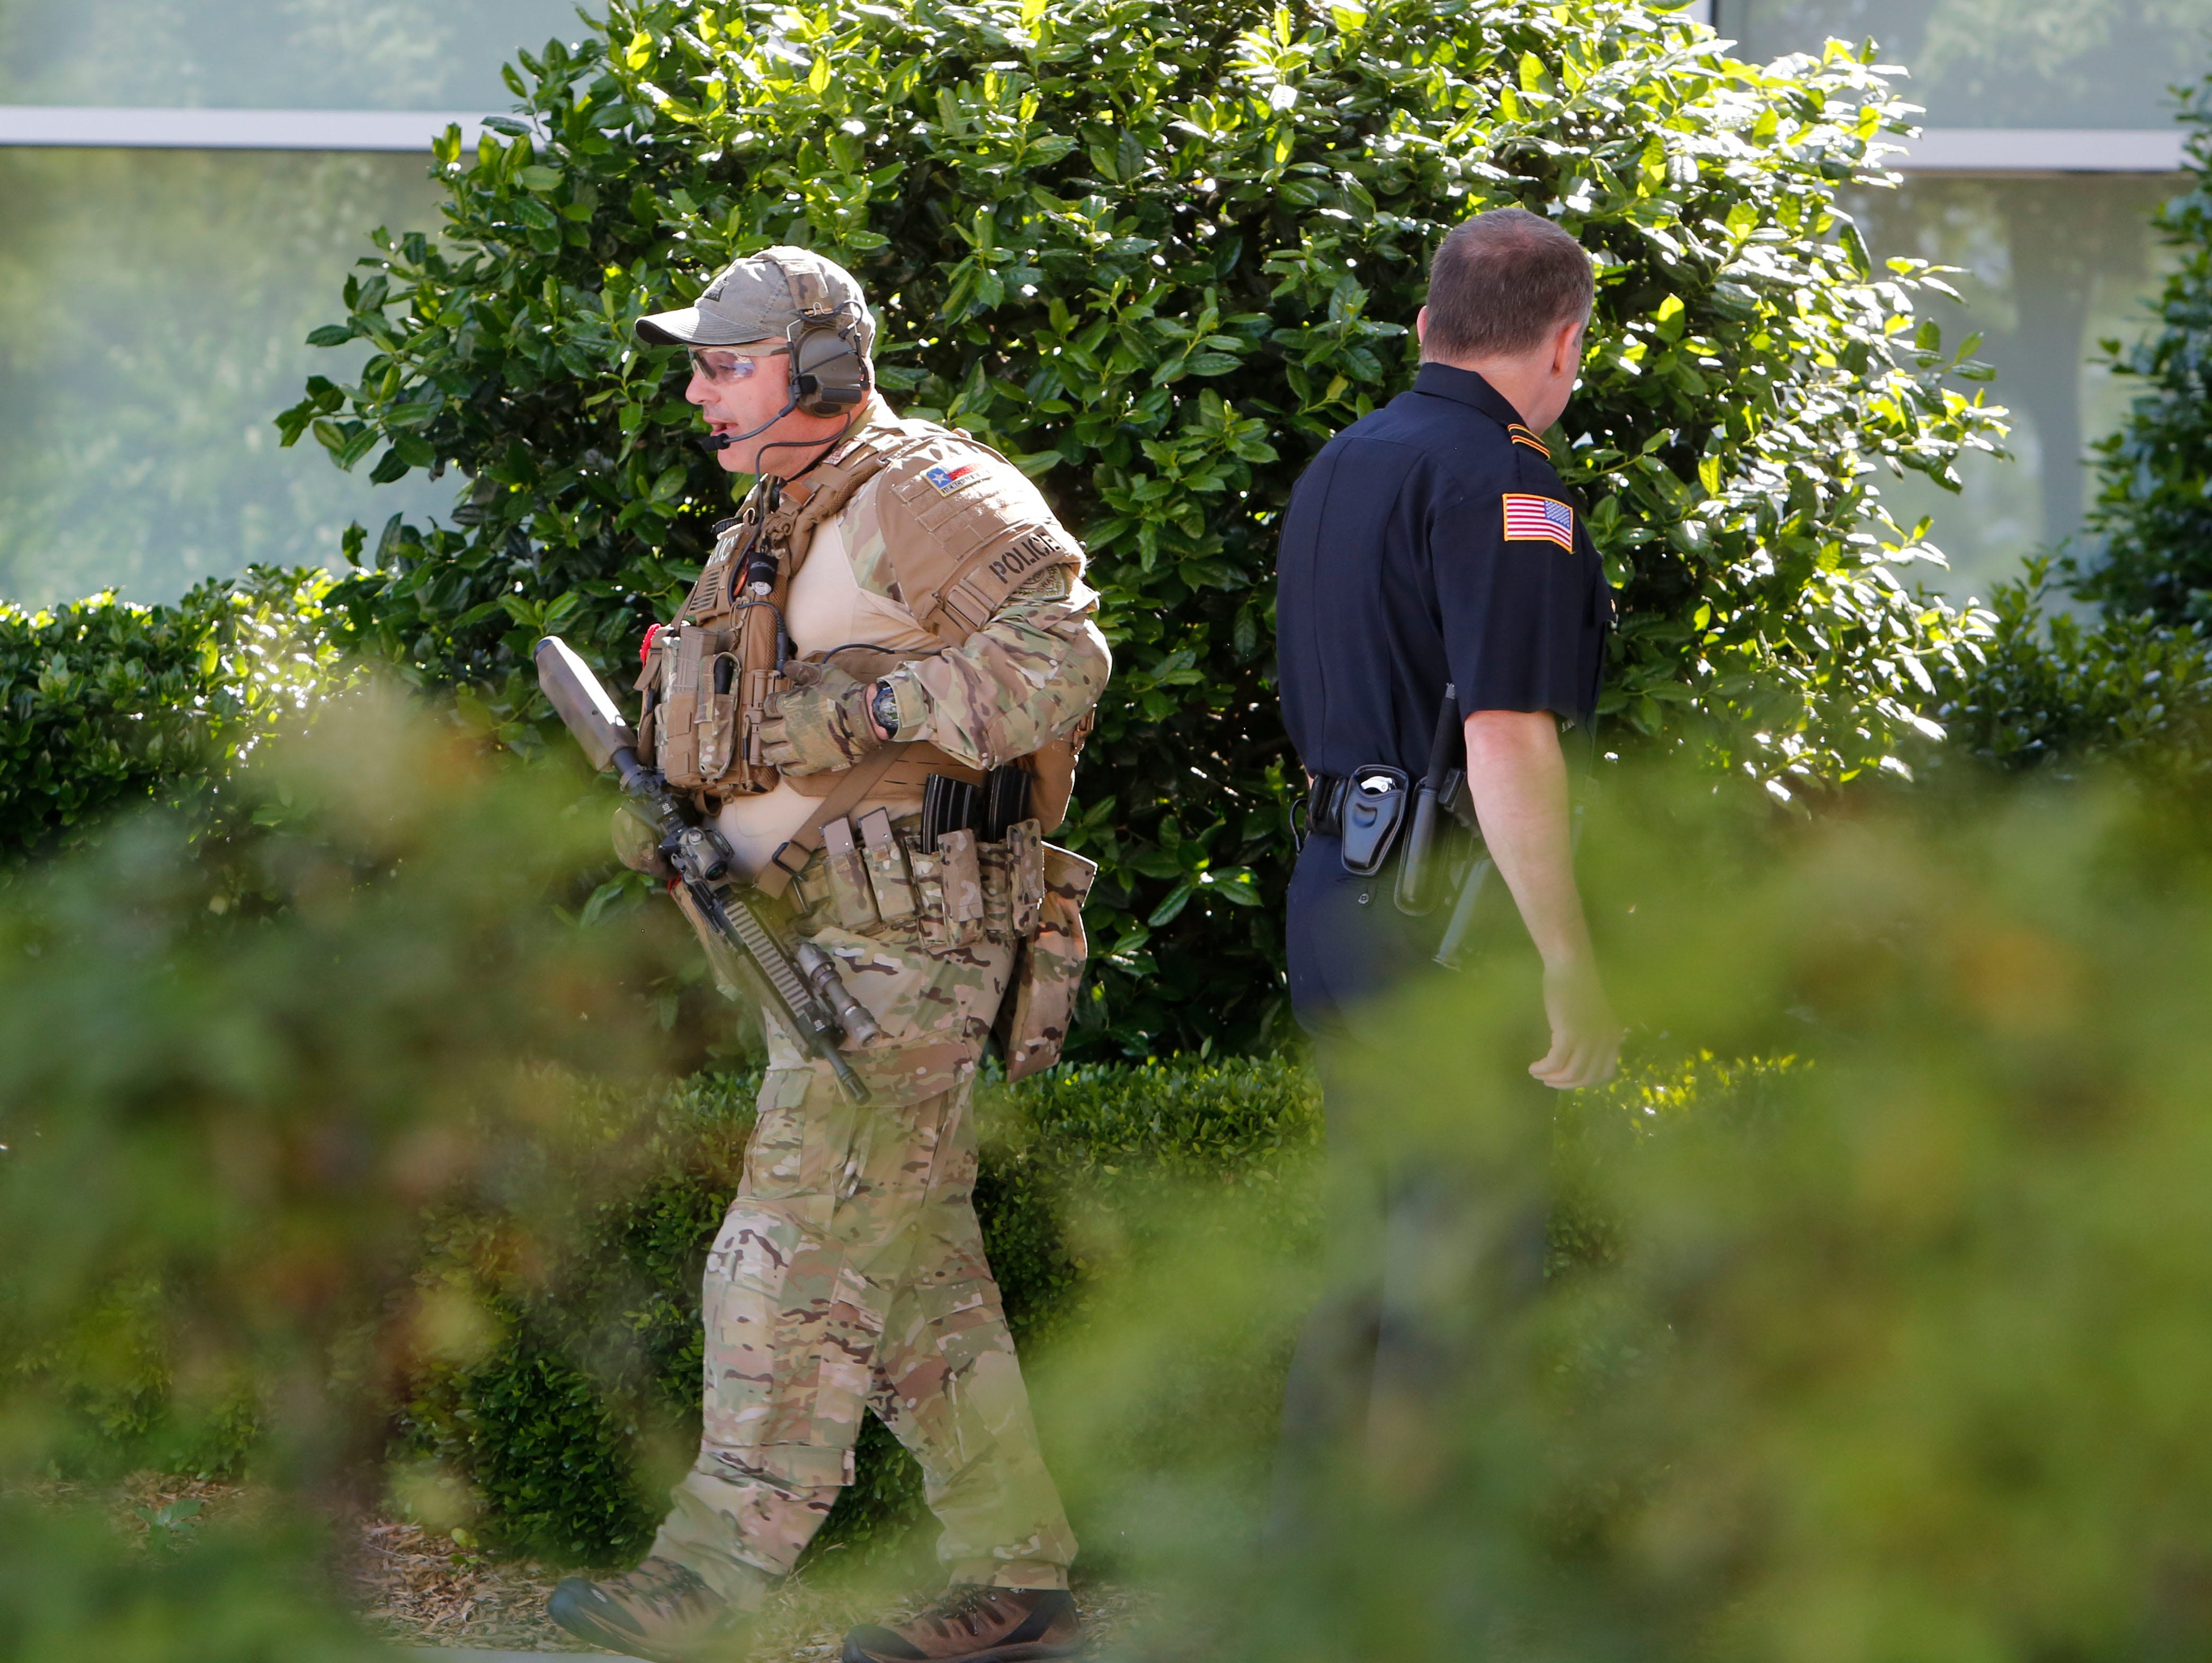 Officers patrol the perimeter of the Curtis Culwell Center in Garland, Texas. A contest for cartoon depictions of the prophet Mohammad in the Dallas suburb is on lock down after authorities reported a shooting outside the building.